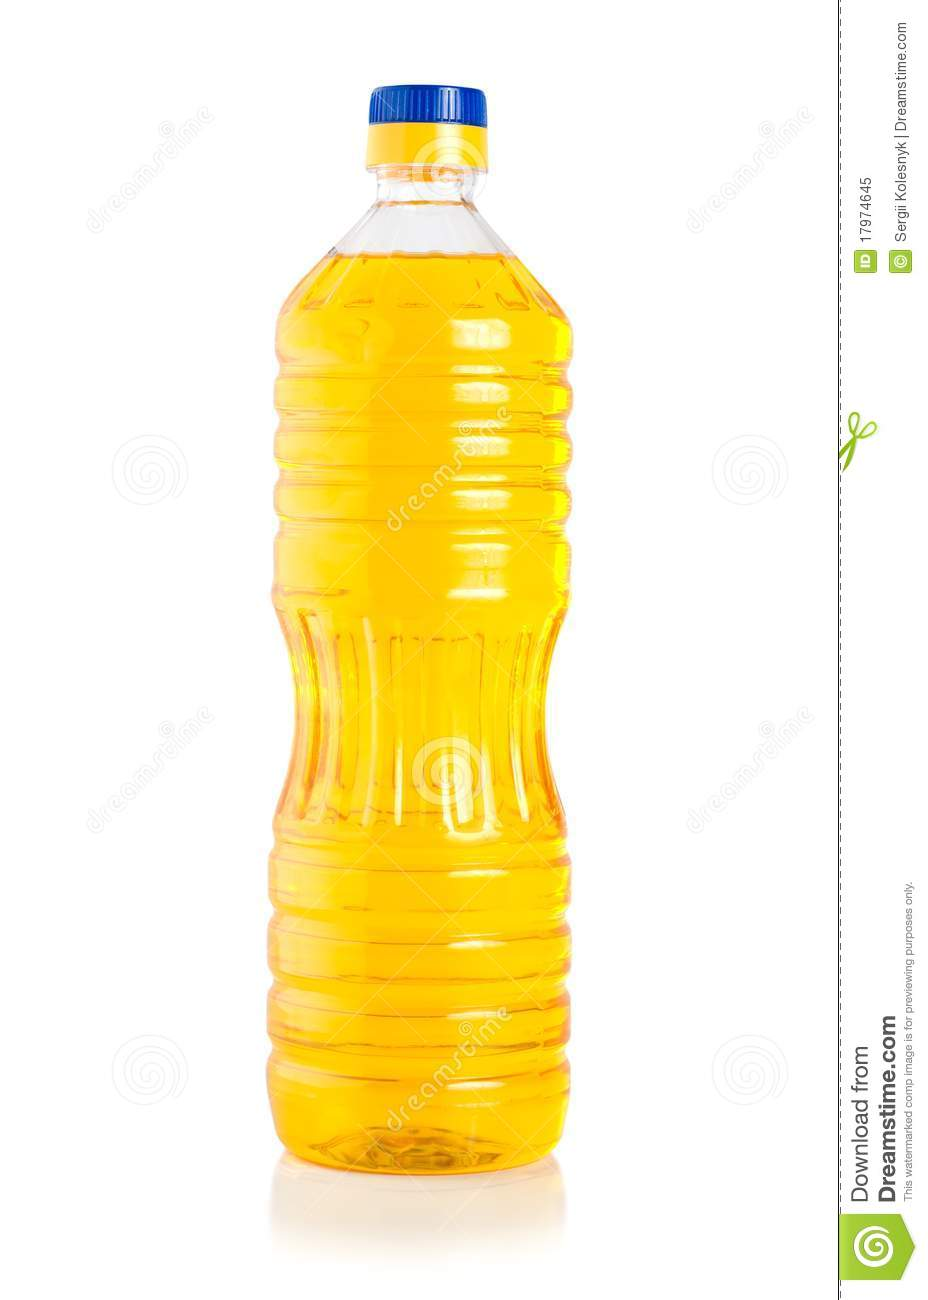 Vegetable Oil In Plastic Bottle Isolated On A White Background